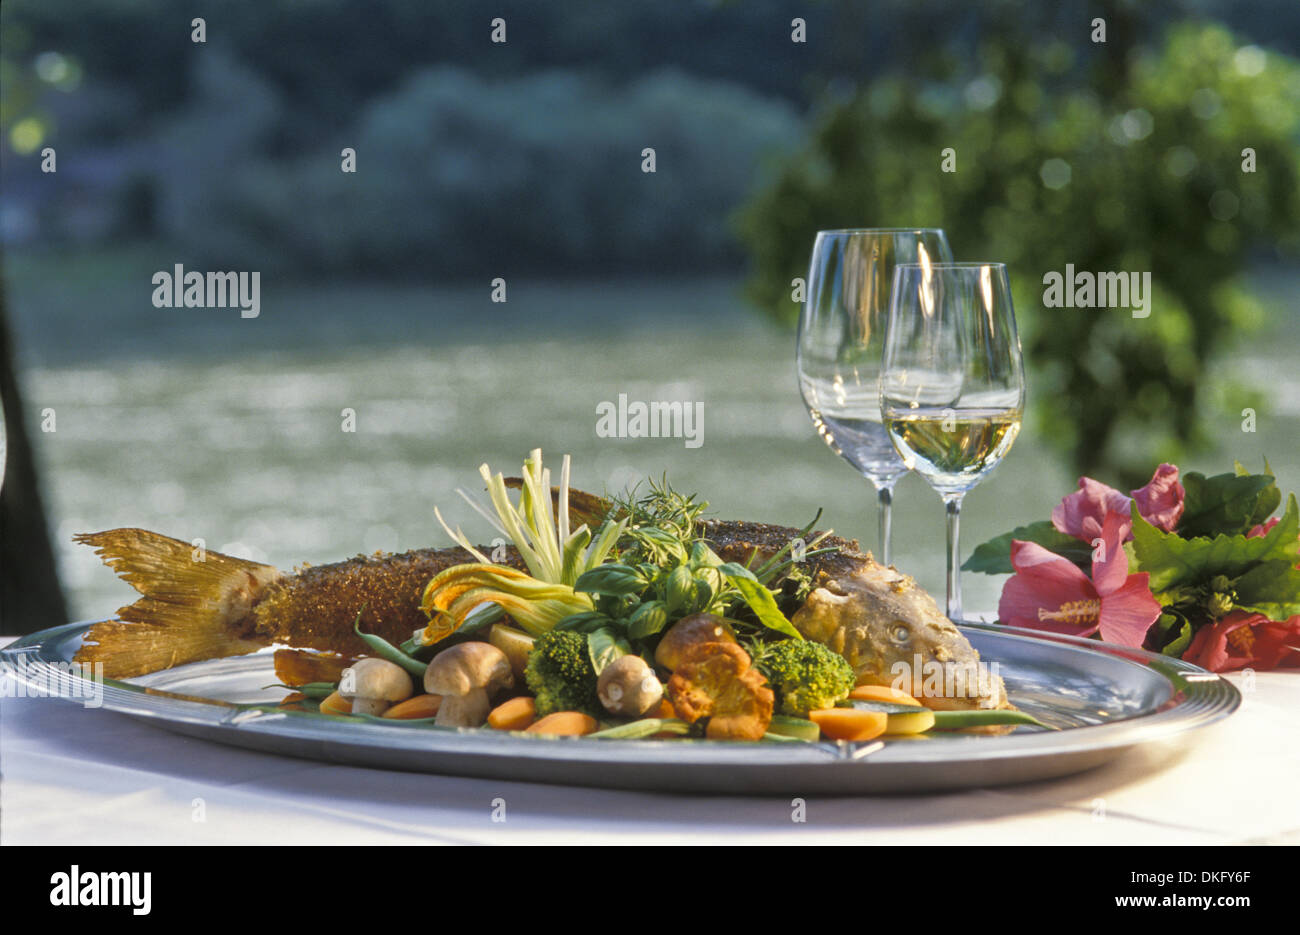 Fish dish with white wine stock photo royalty free image for White wine with fish